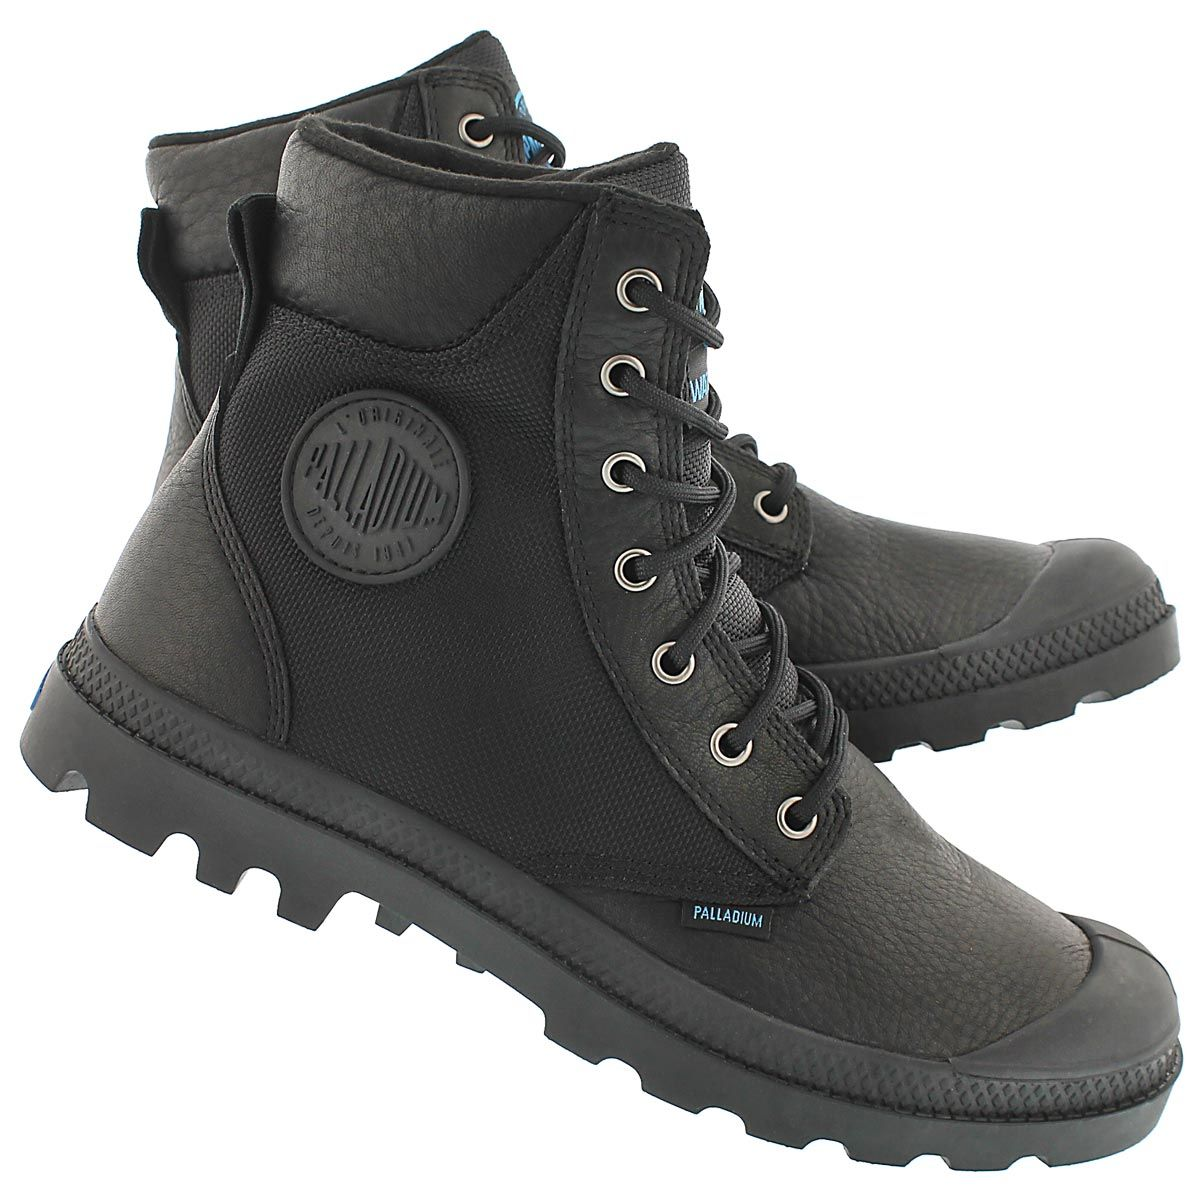 8f292ff4c96d49 Palladium Men s PAMPA SPORT CUFF black waterproof boots 73234-001 ...